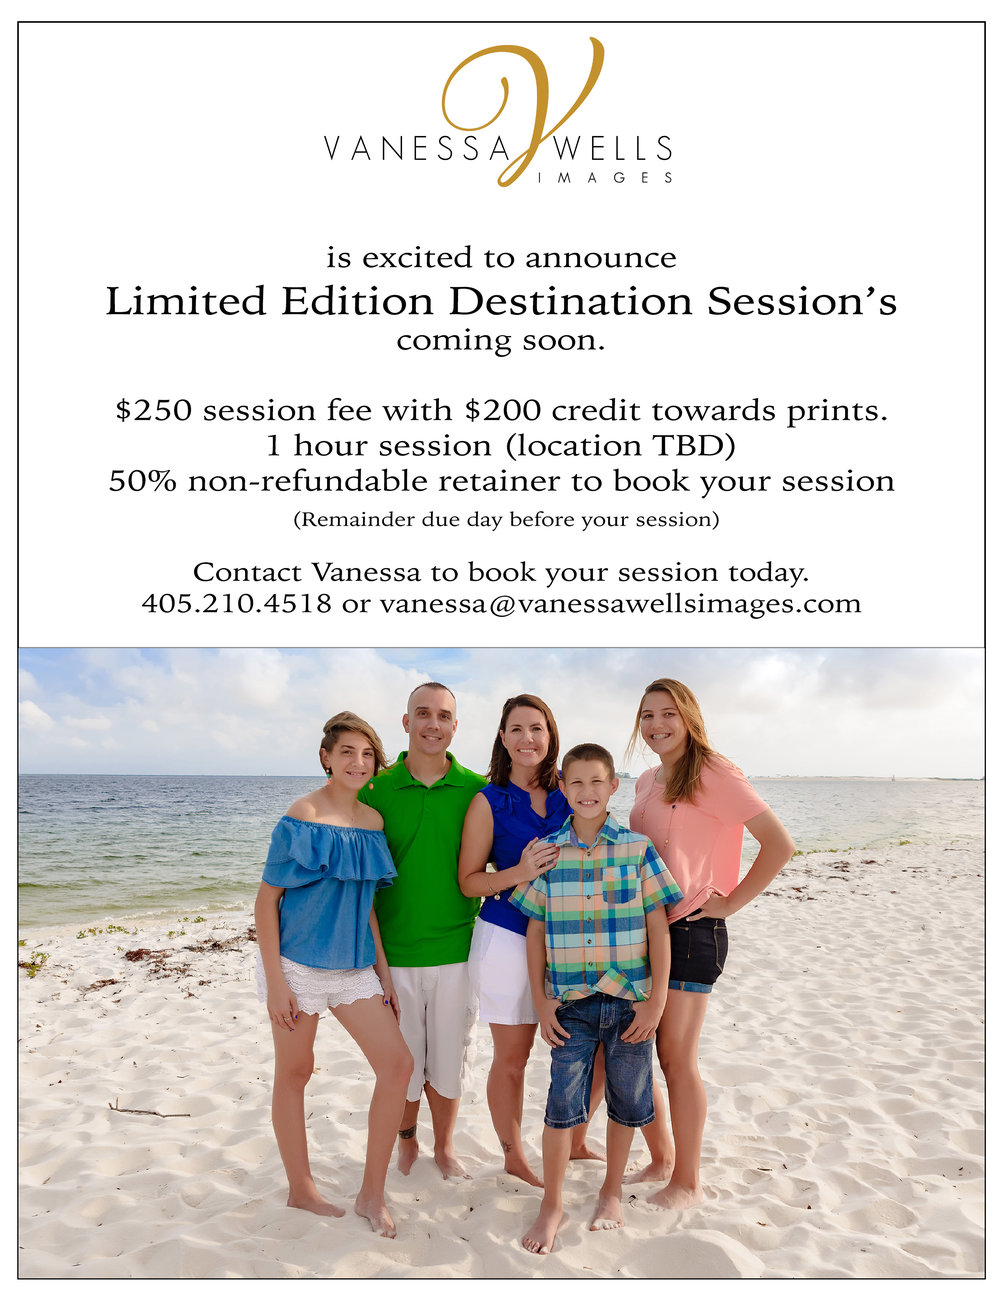 Limited Edition Destination Session